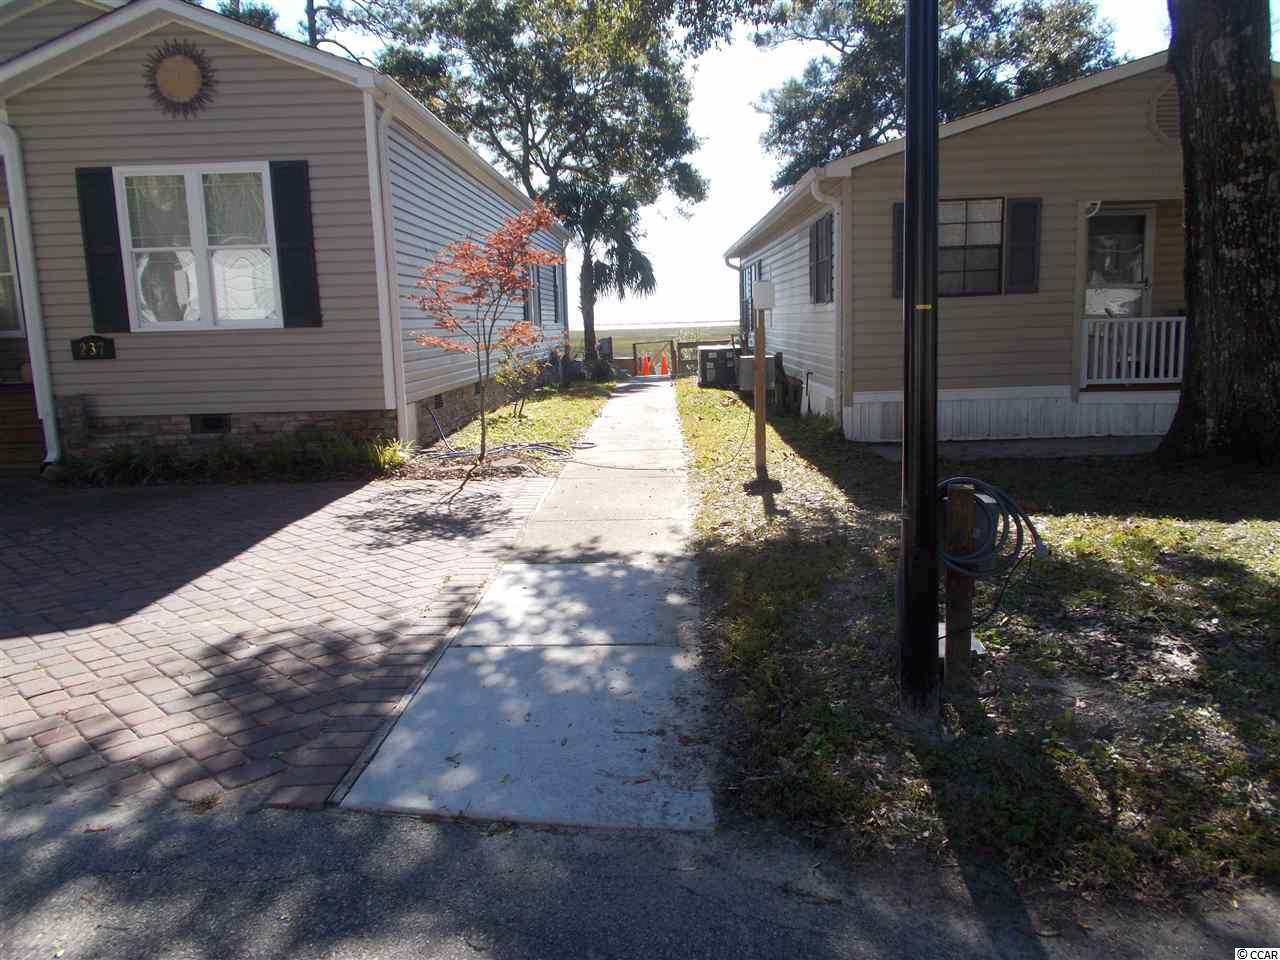 This 2 bedroom house at  Myrtle Beach RV Resort is currently for sale